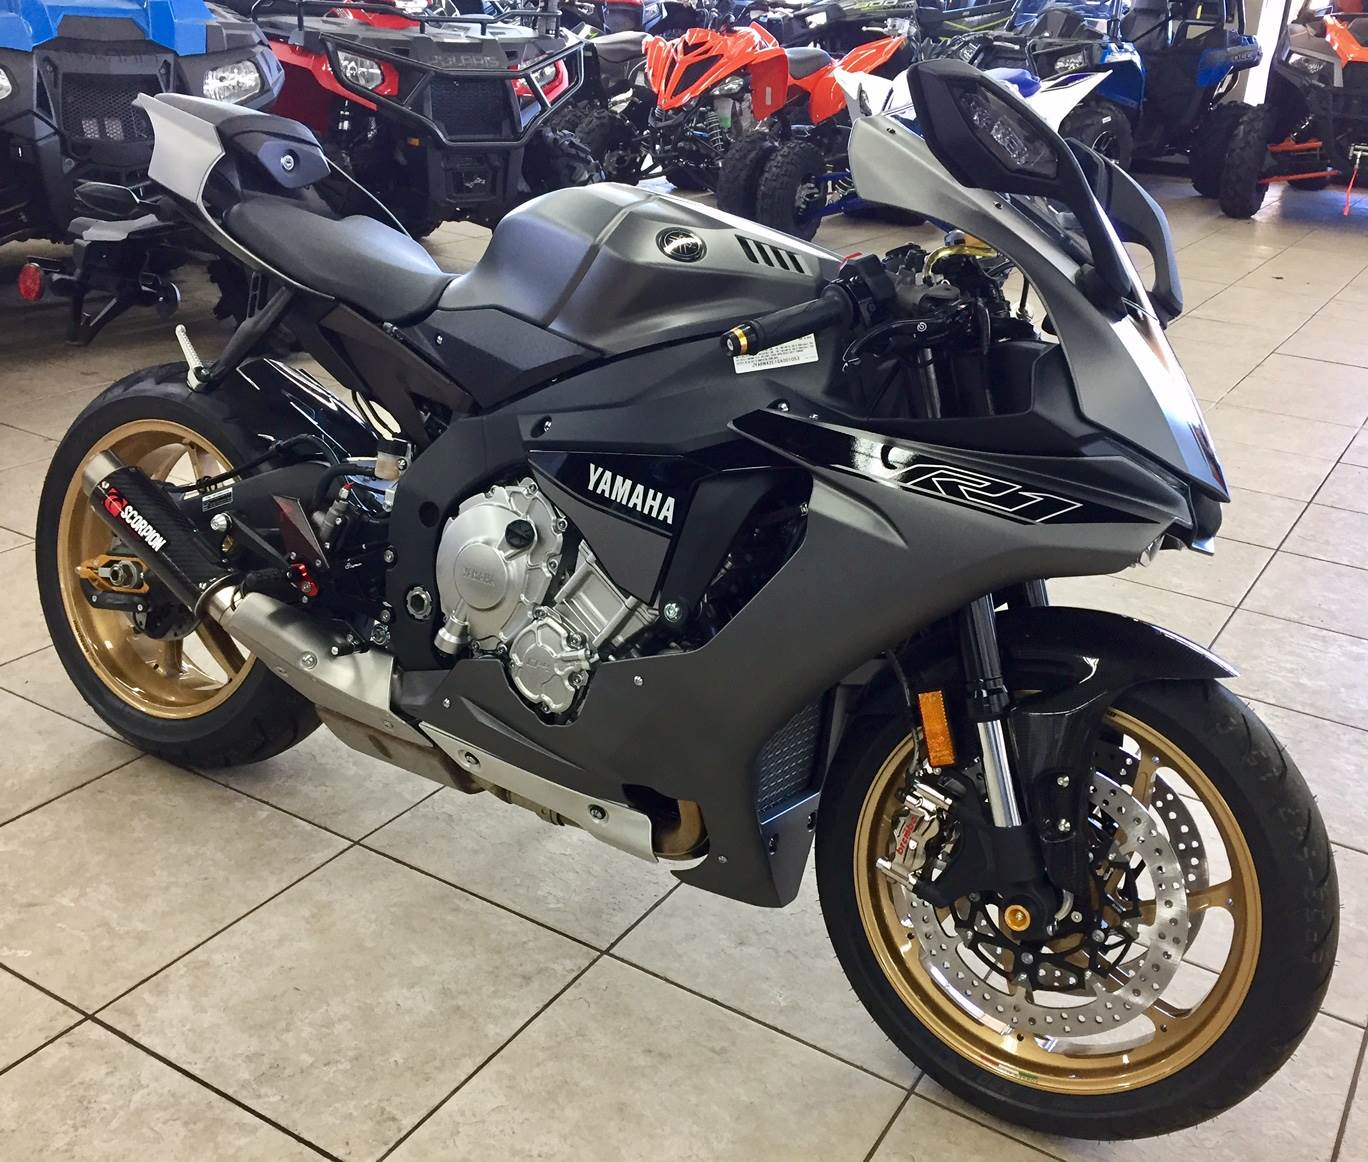 New 2016 yamaha yzf r1s motorcycles in lowell nc stock for 2016 yamaha r1s